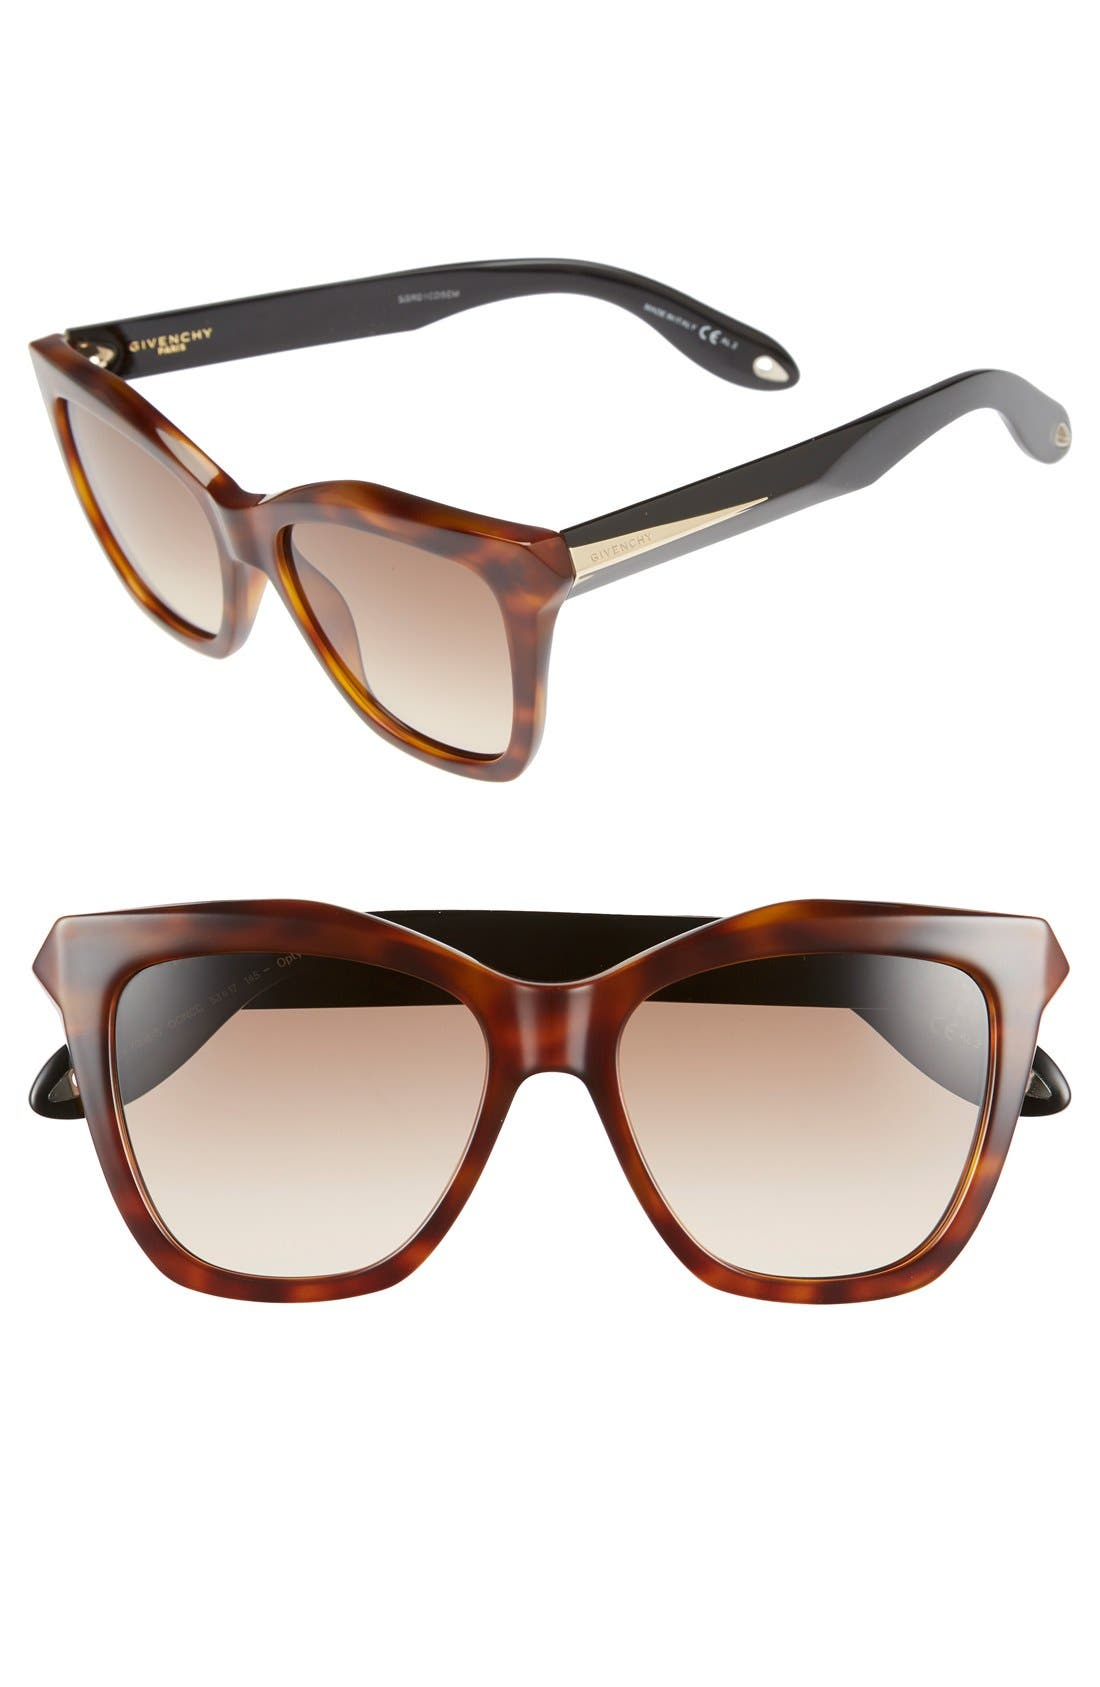 Givenchy 53mm Cat Eye Sunglasses